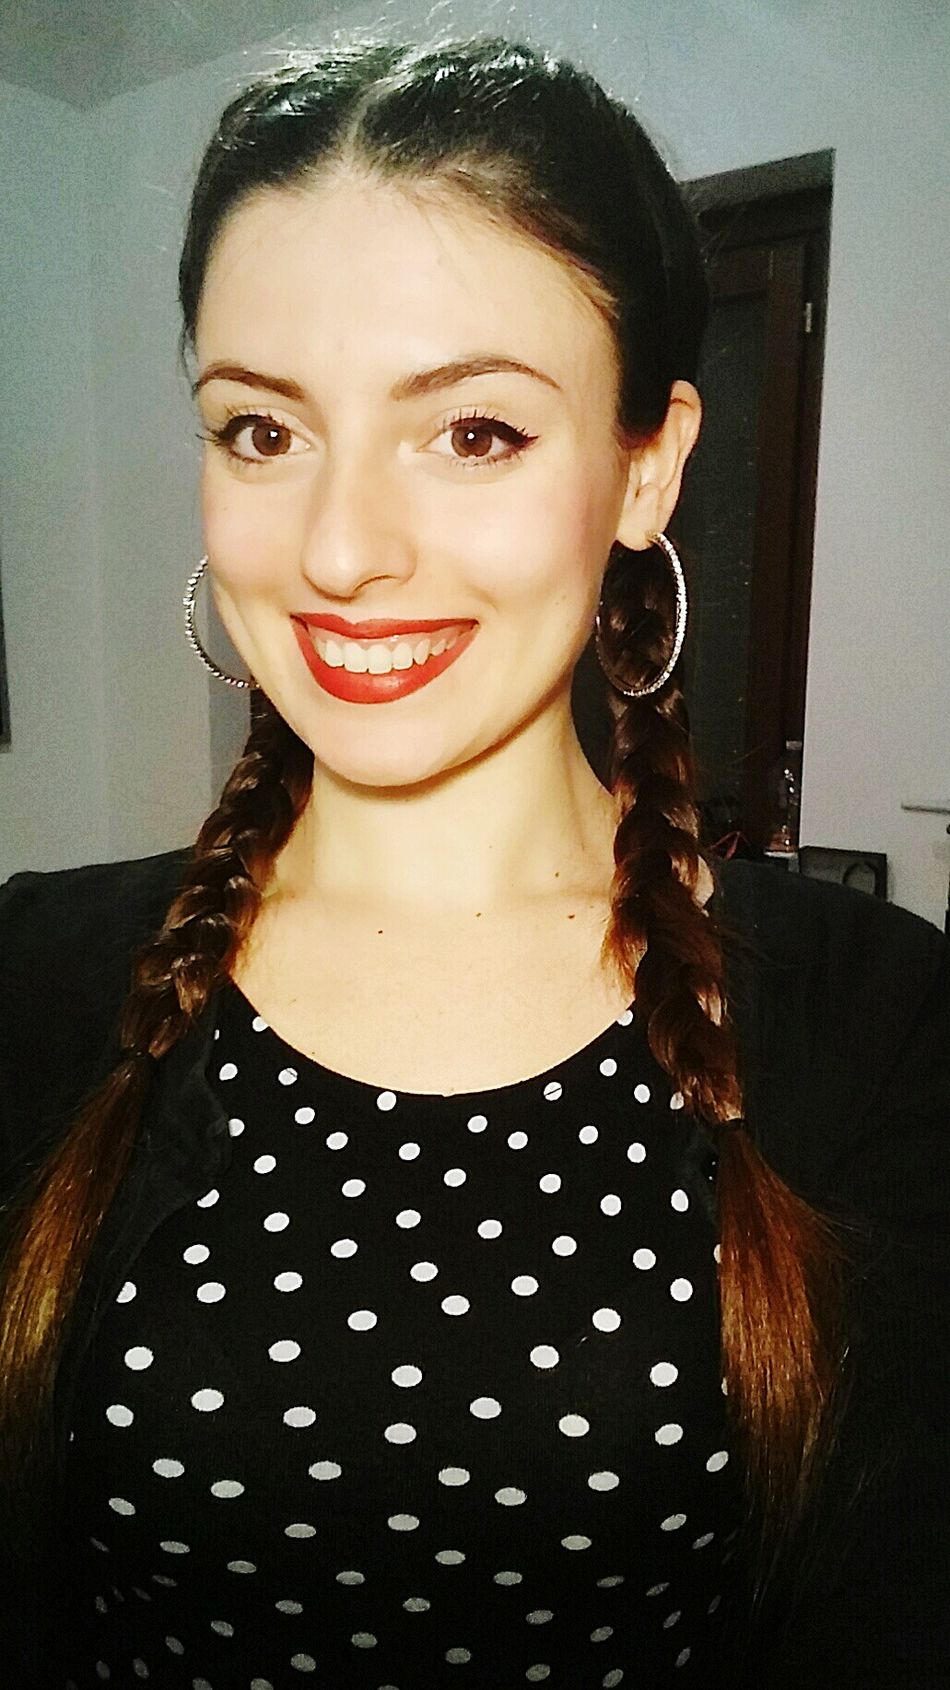 Just me ✌Portrait One Woman Only Looking At Camera One Person Smiling Long Hair Red Lipstick Make-up Indoors  Pois Brown Hair Browneyes EyeEm Only Me Braided Hair Like Like4like